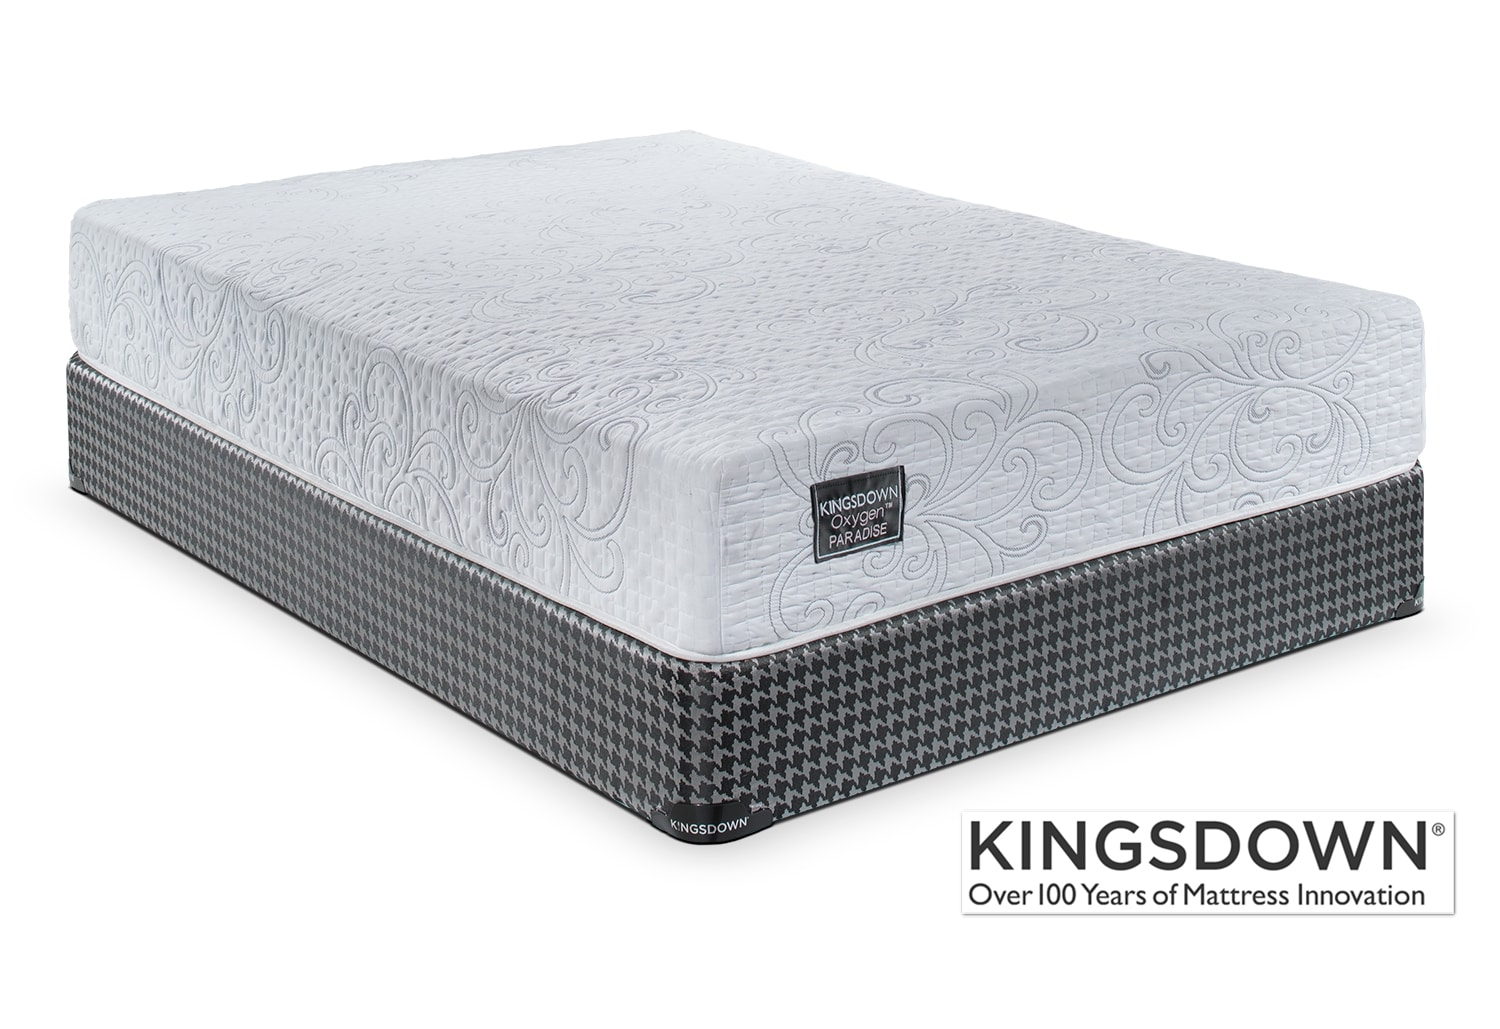 Mattresses and Bedding - Kingsdown Paradise Full Mattress/Boxspring Set